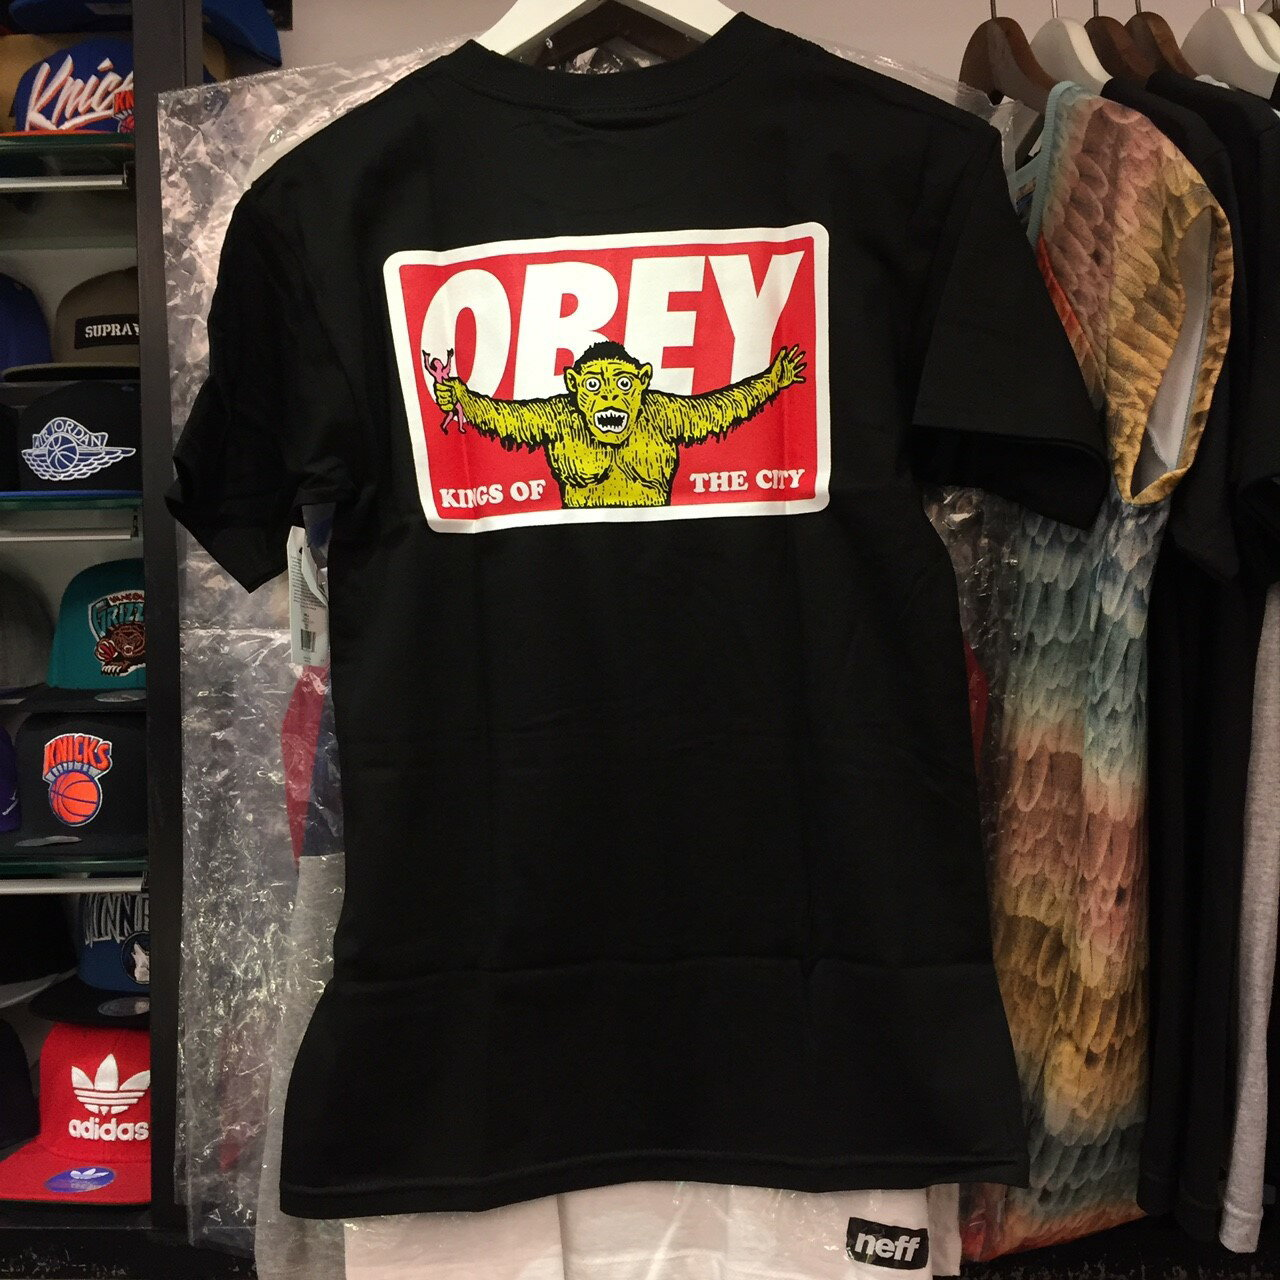 BEETLE OBEY KINGS OF THE CITY 城市之王 全黑 紅字 LOGO 短T TEE OB-414 163081152BLK 2